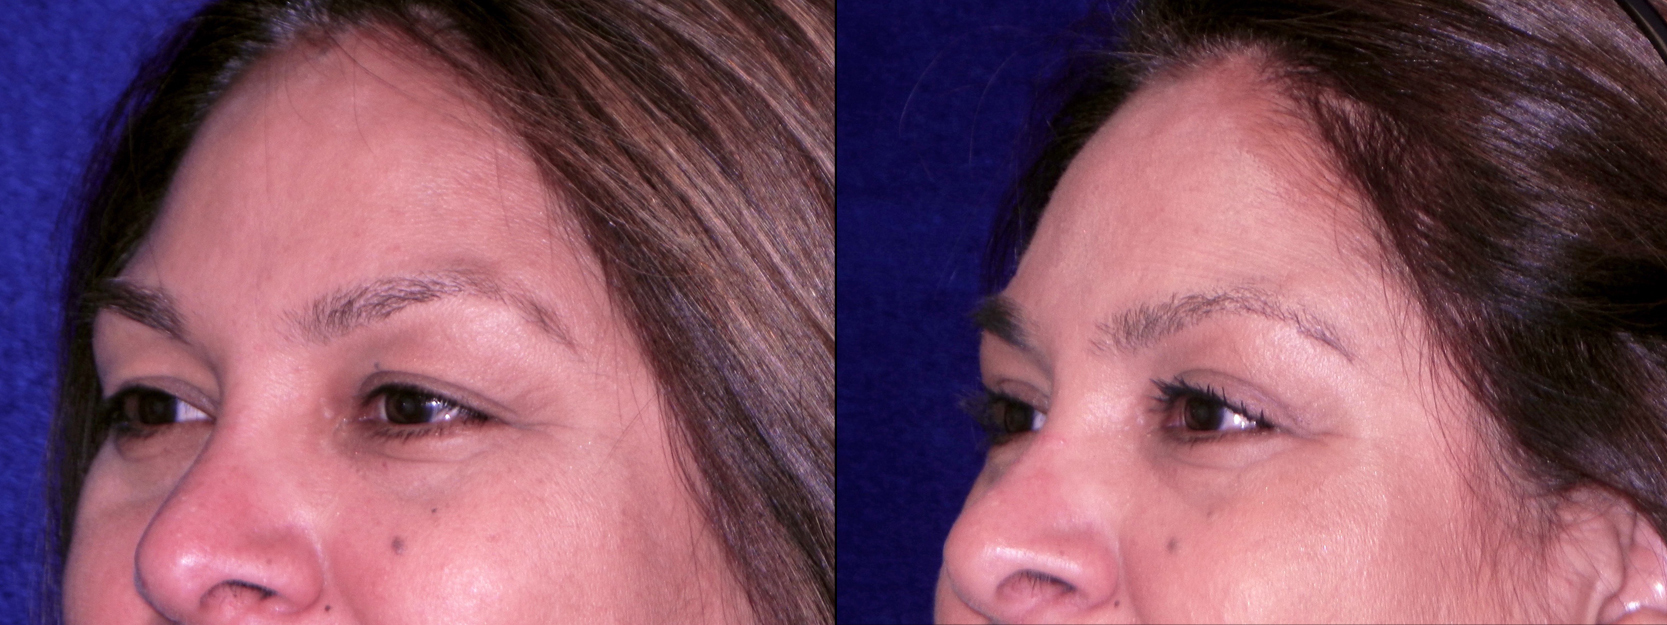 Left 3/4 View Close Up - Upper Blepharoplasty